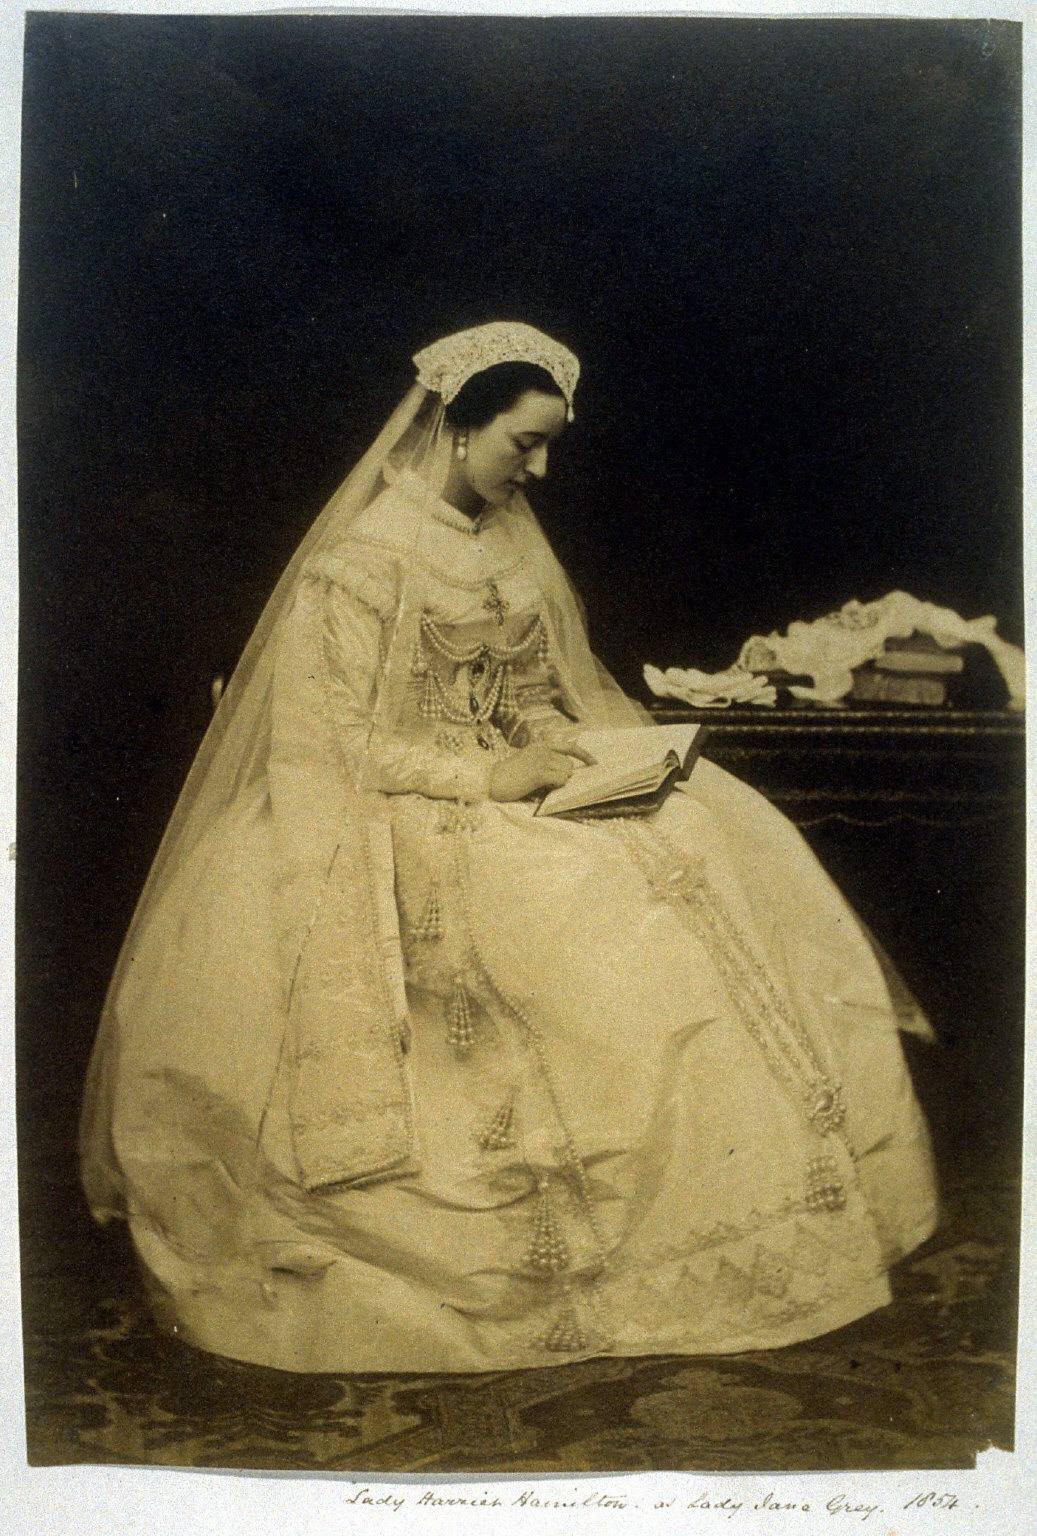 Lady Harriet Hamilton as Lady Jane Grey